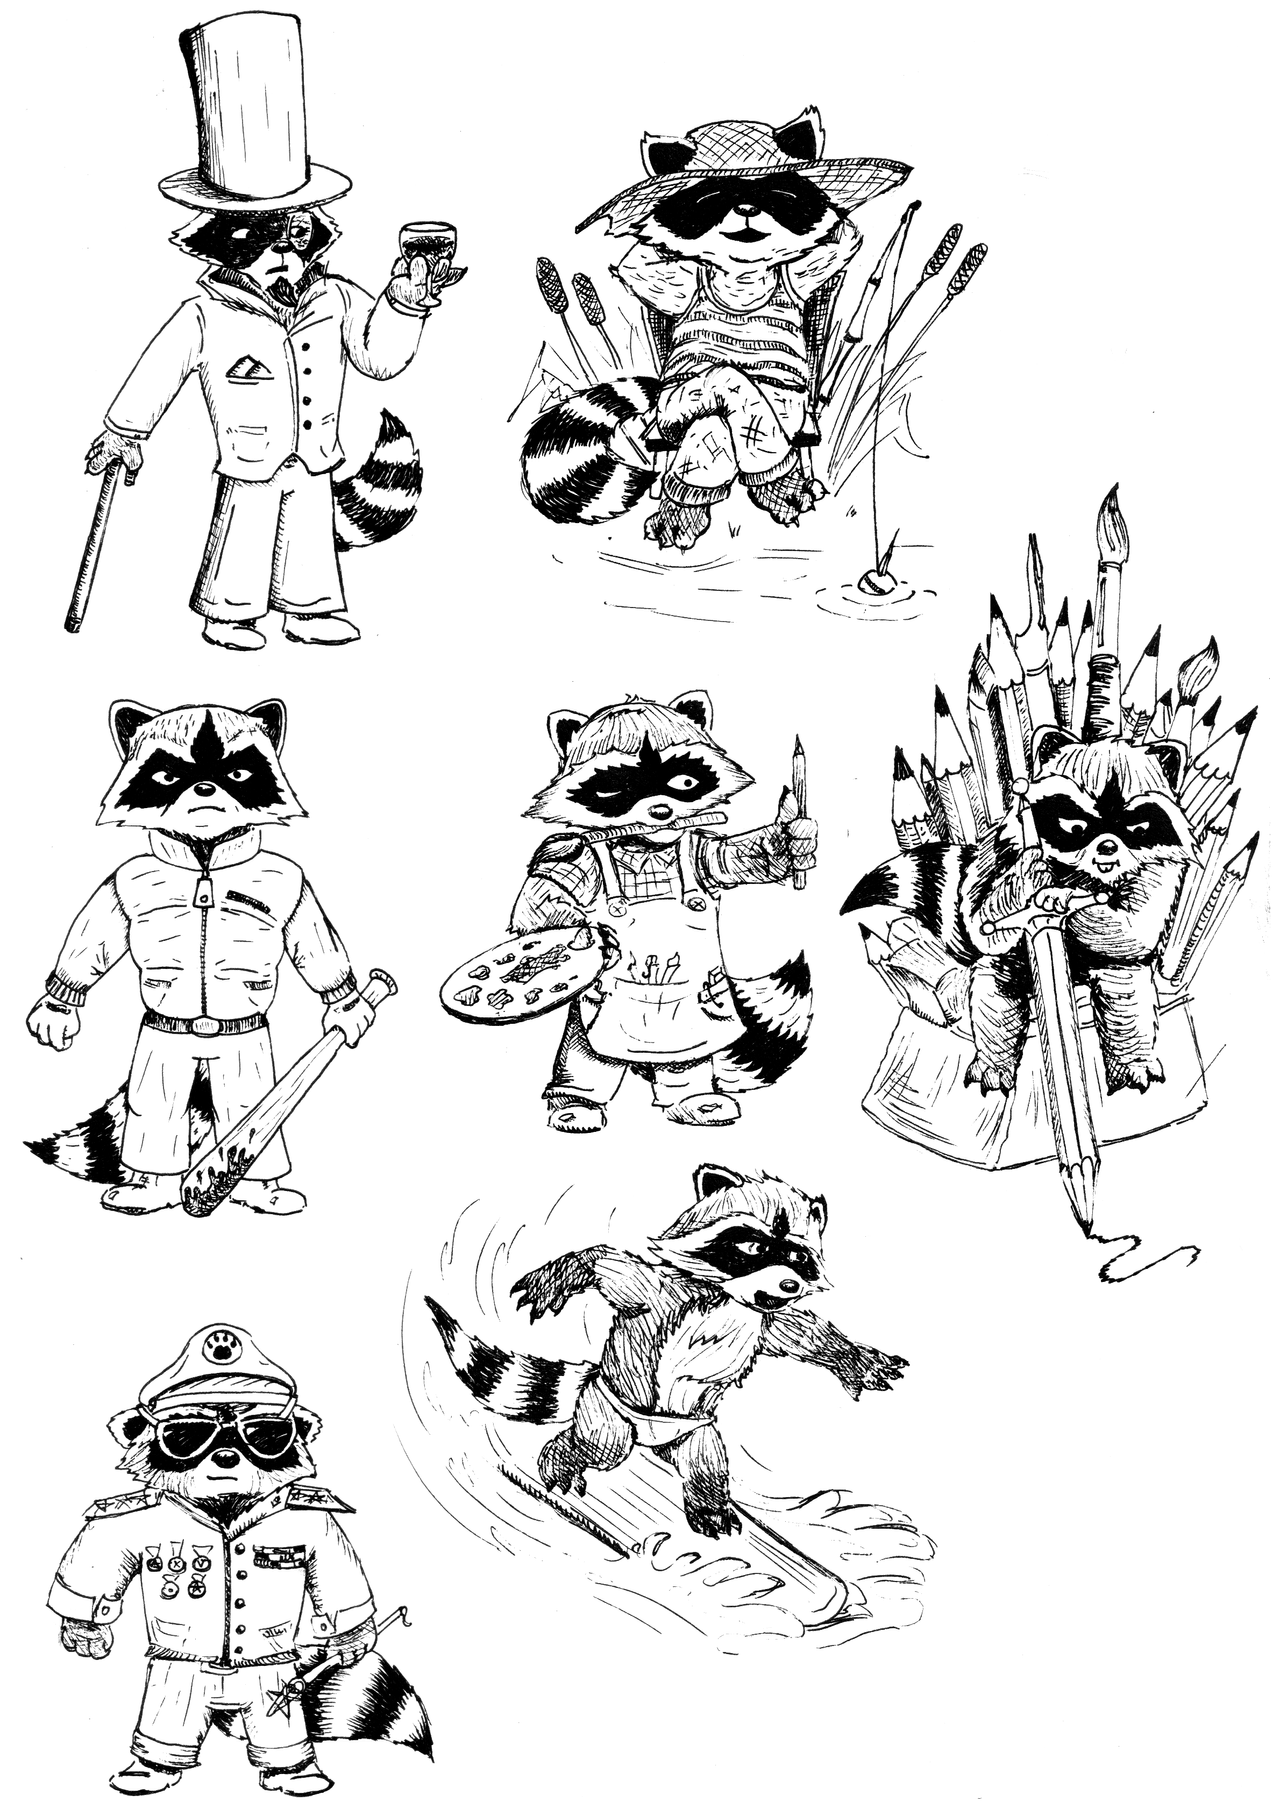 Racoon set 4 by Djigallag